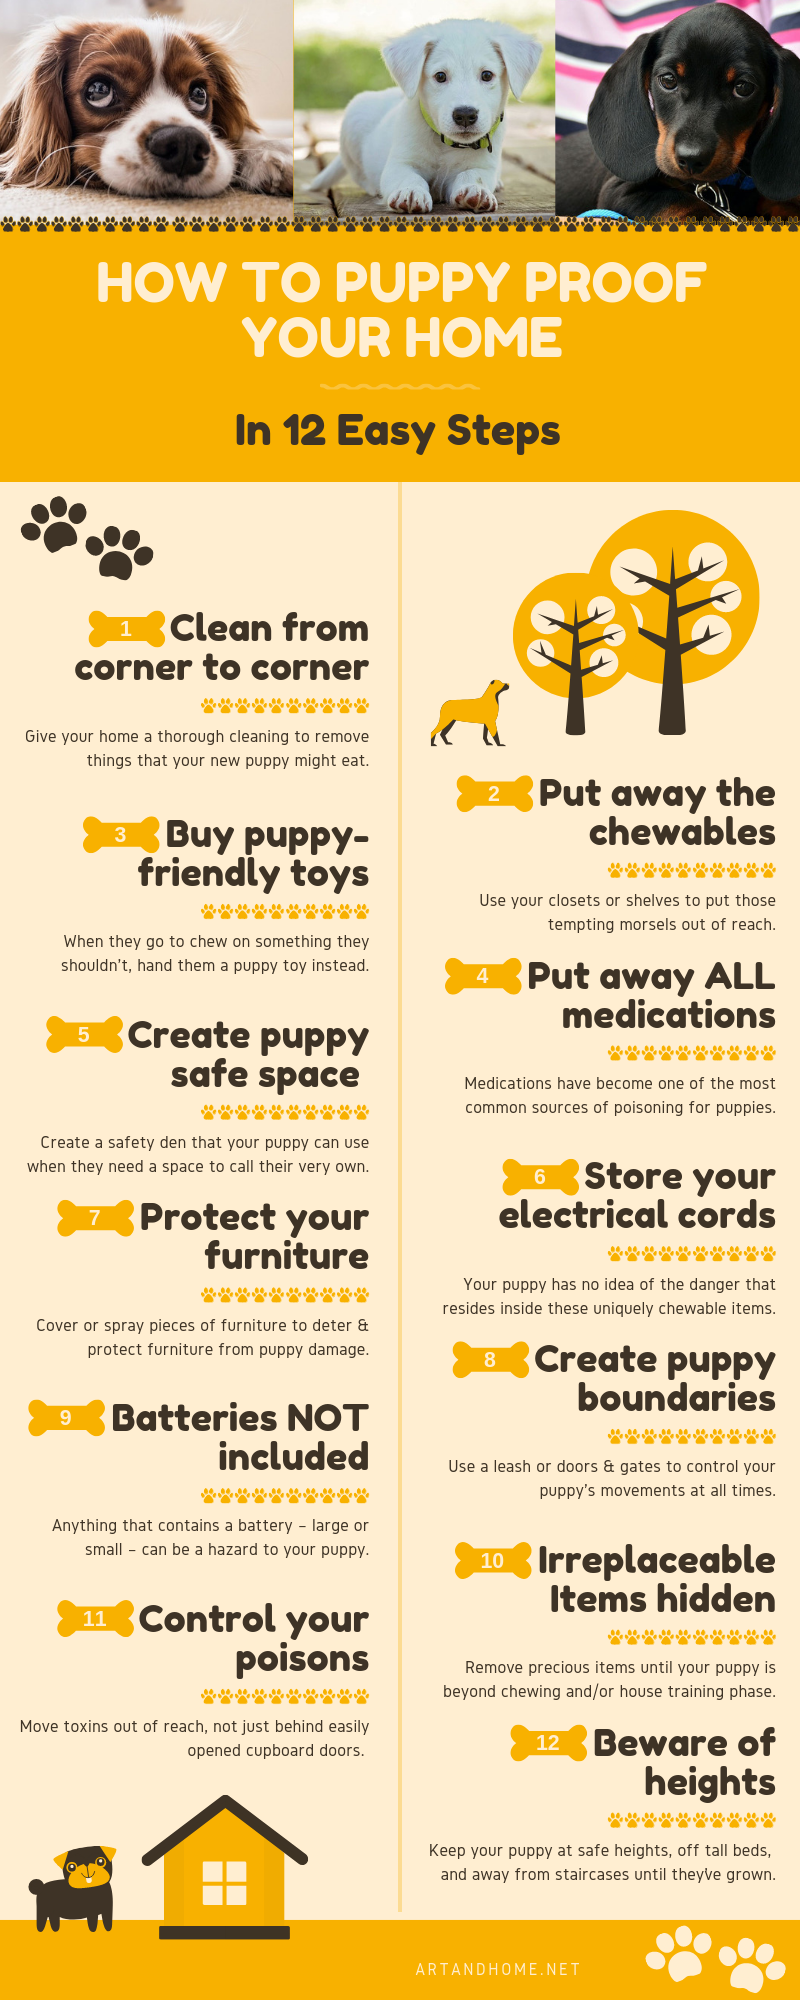 How to Puppy Proof Your Home - an Infographic